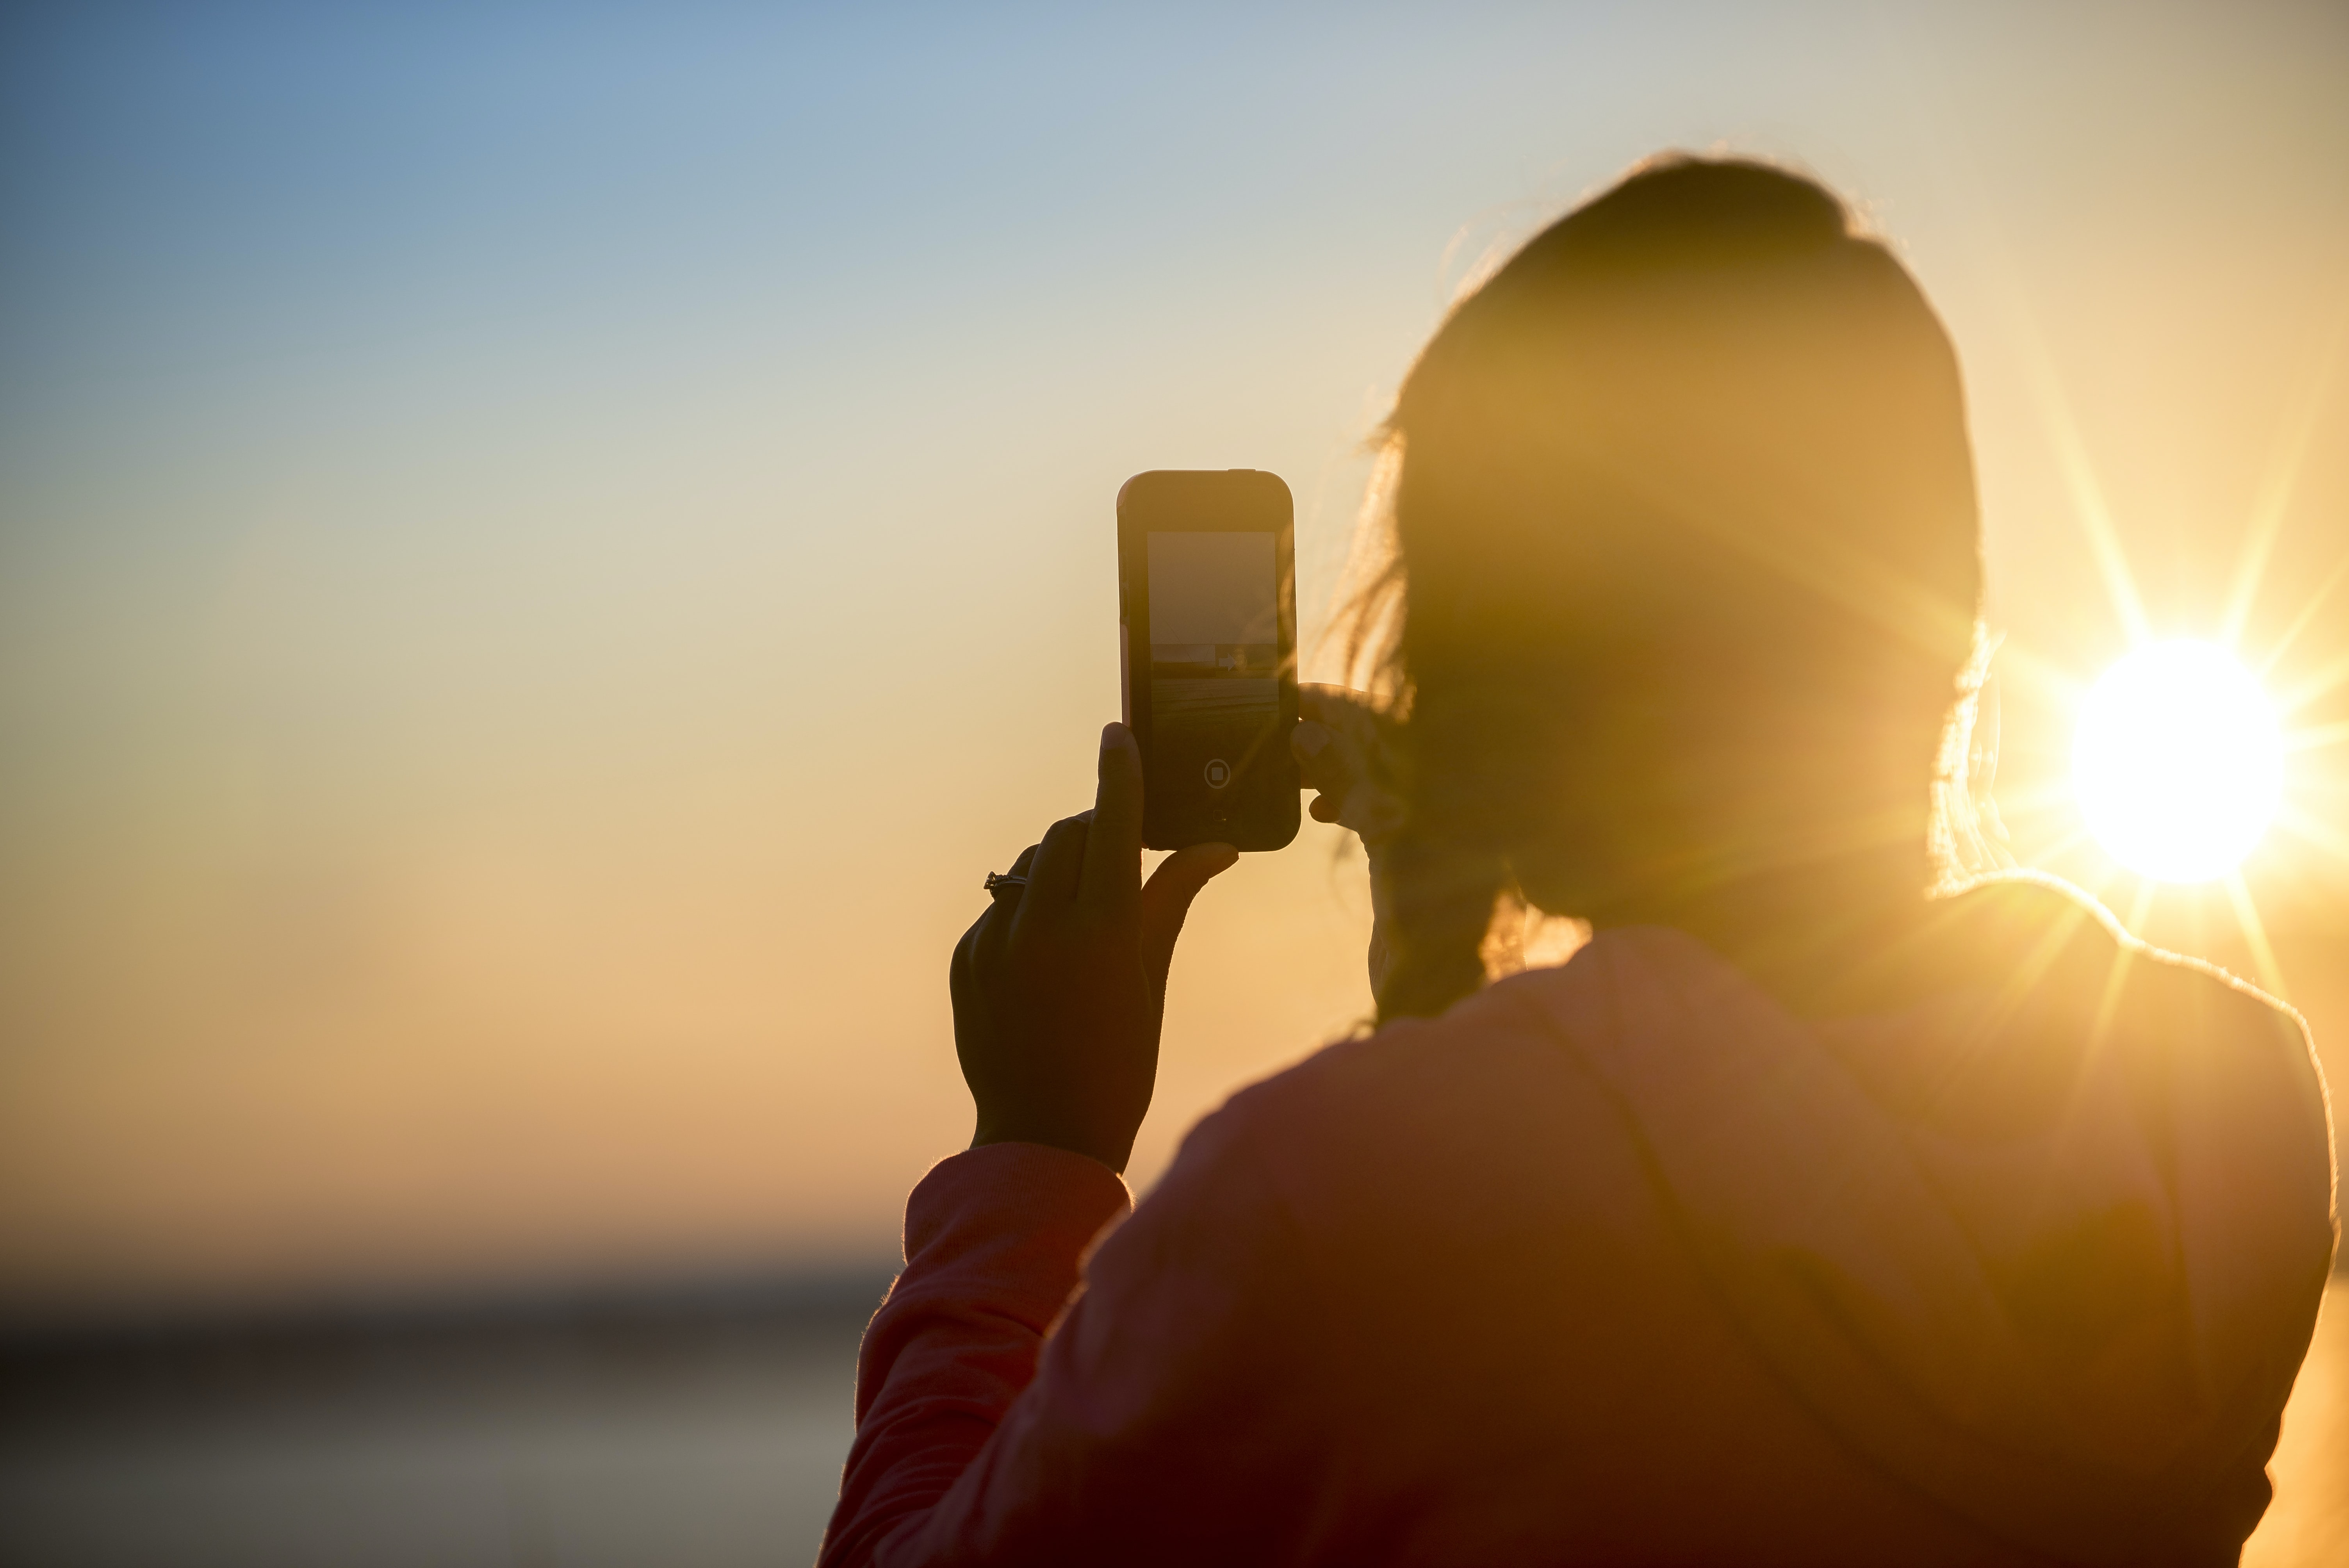 A woman on the beach taking a photo on her smartphone during golden hour